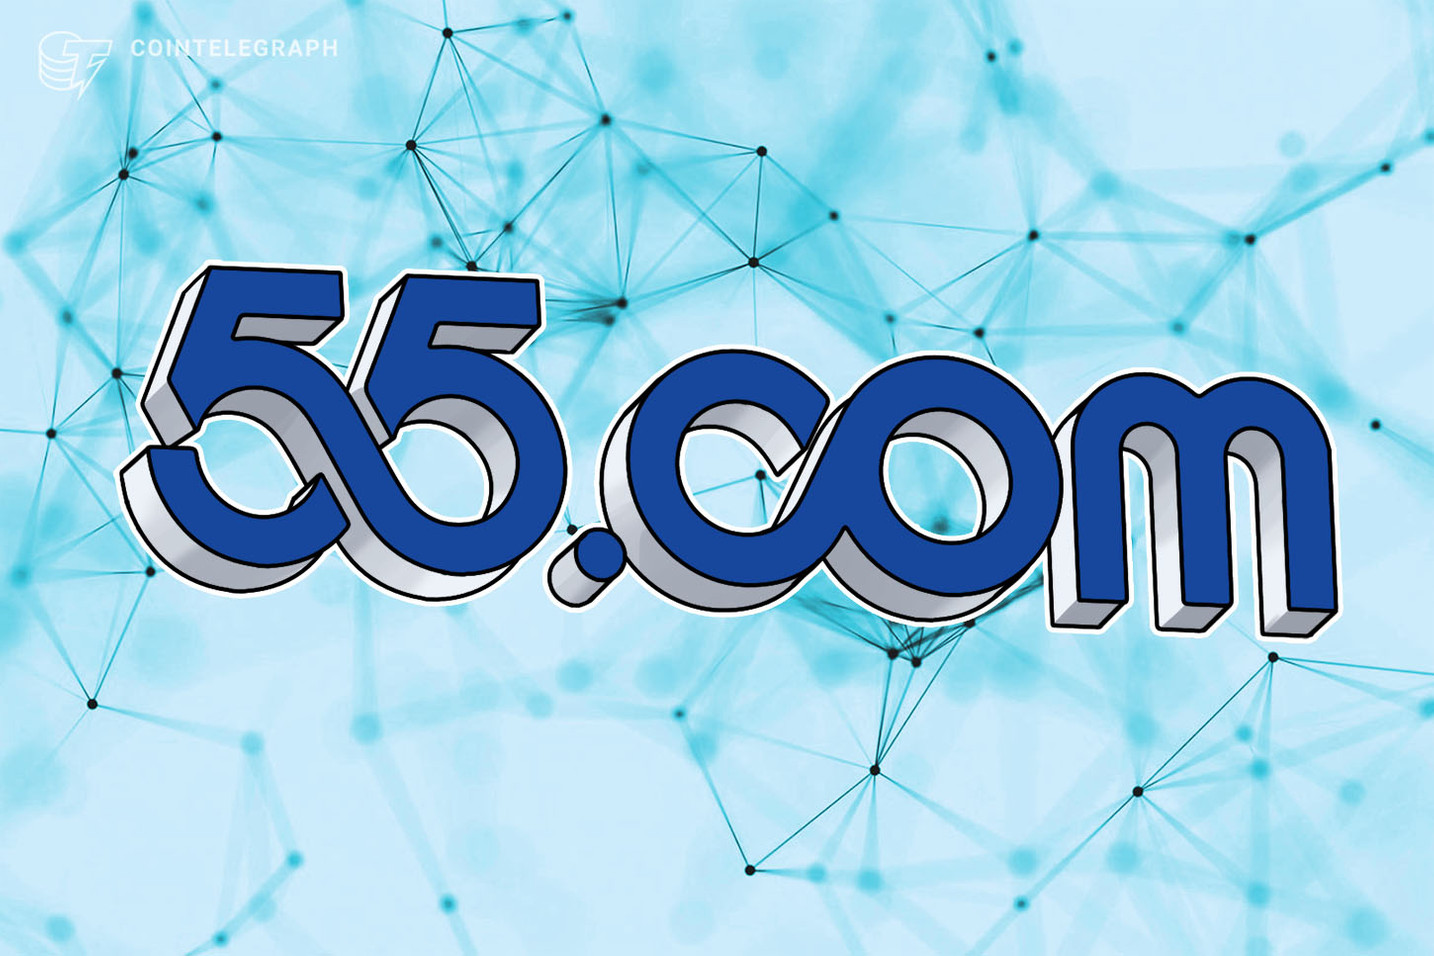 55.com Launches Trading of Premium Brand Product Tokens